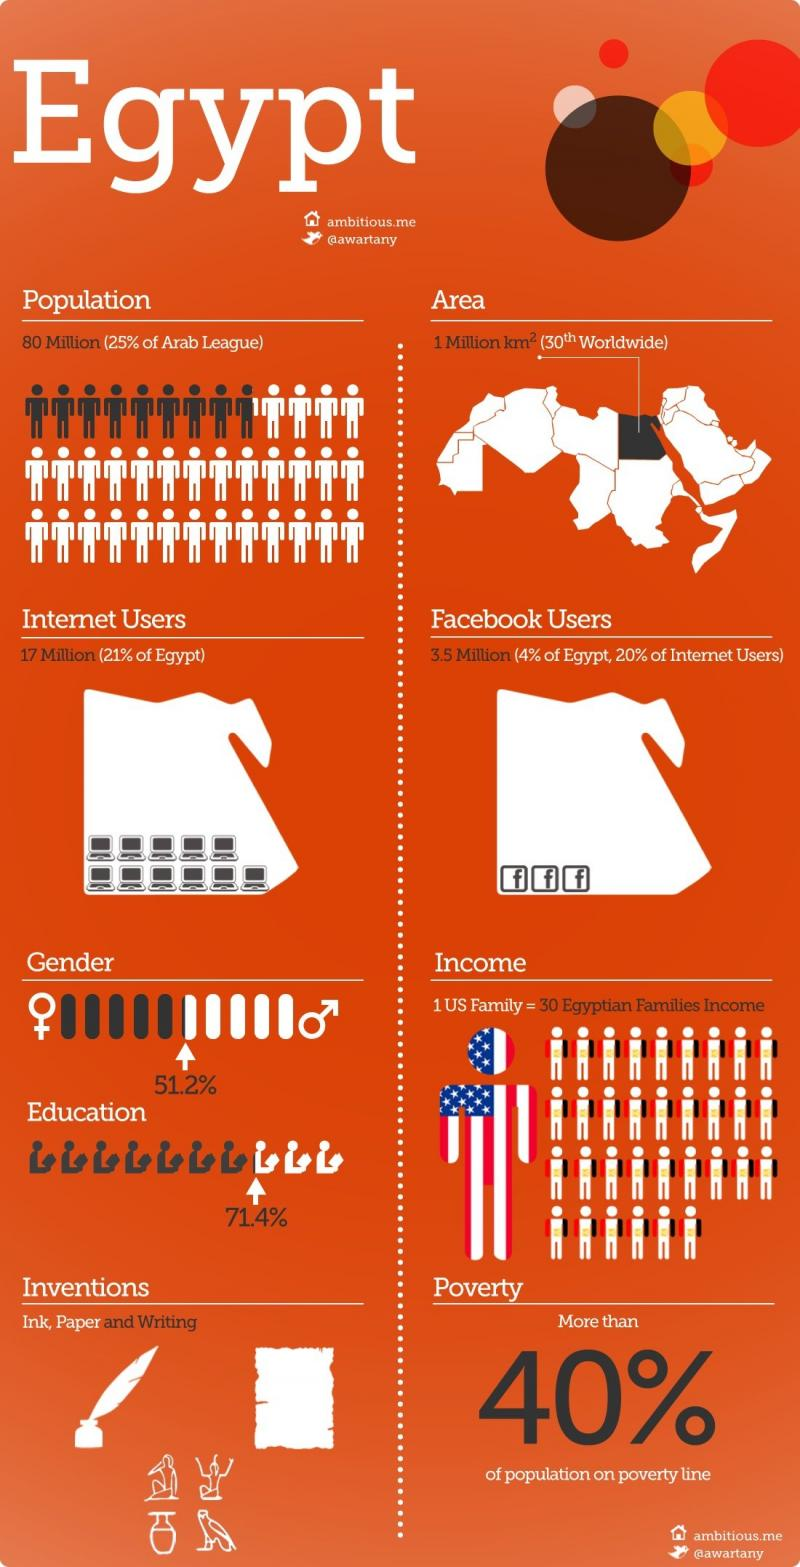 Egypt by Numbers #infographic